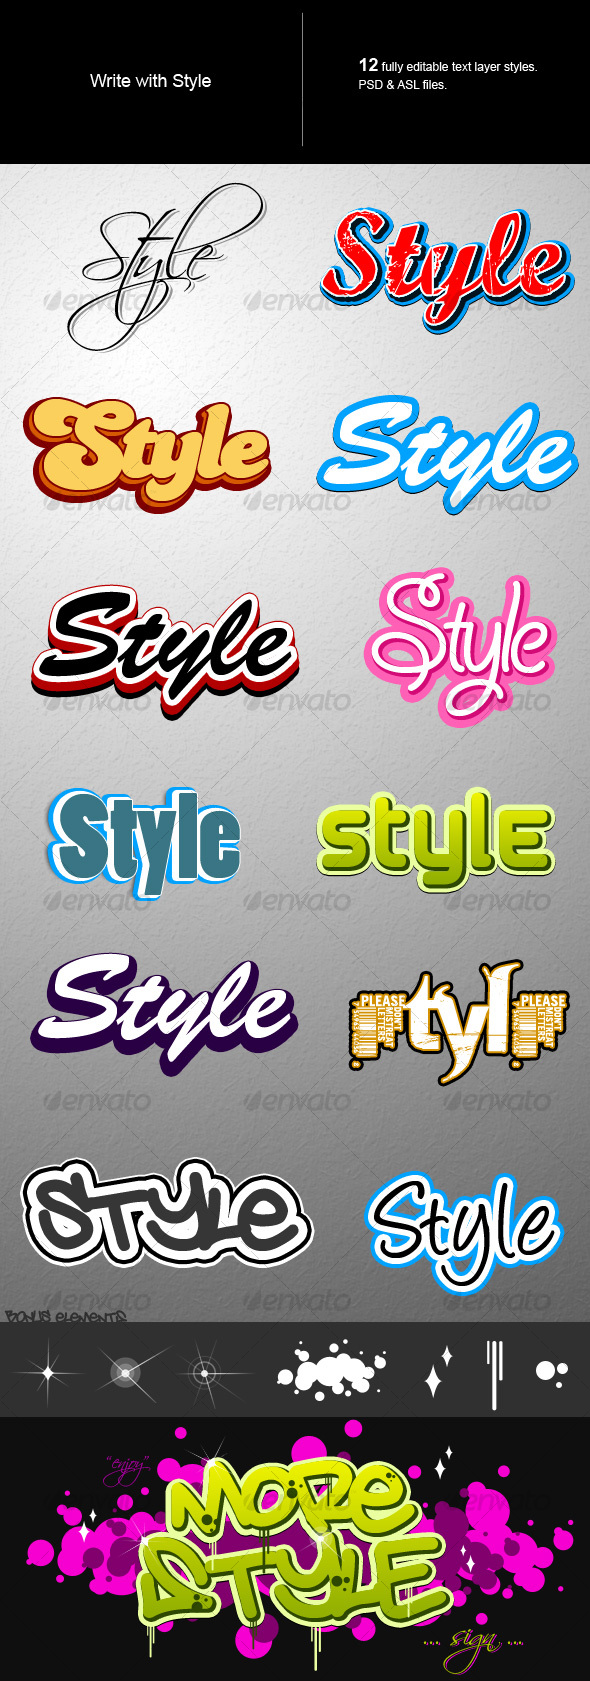 Text style - Text Effects Styles